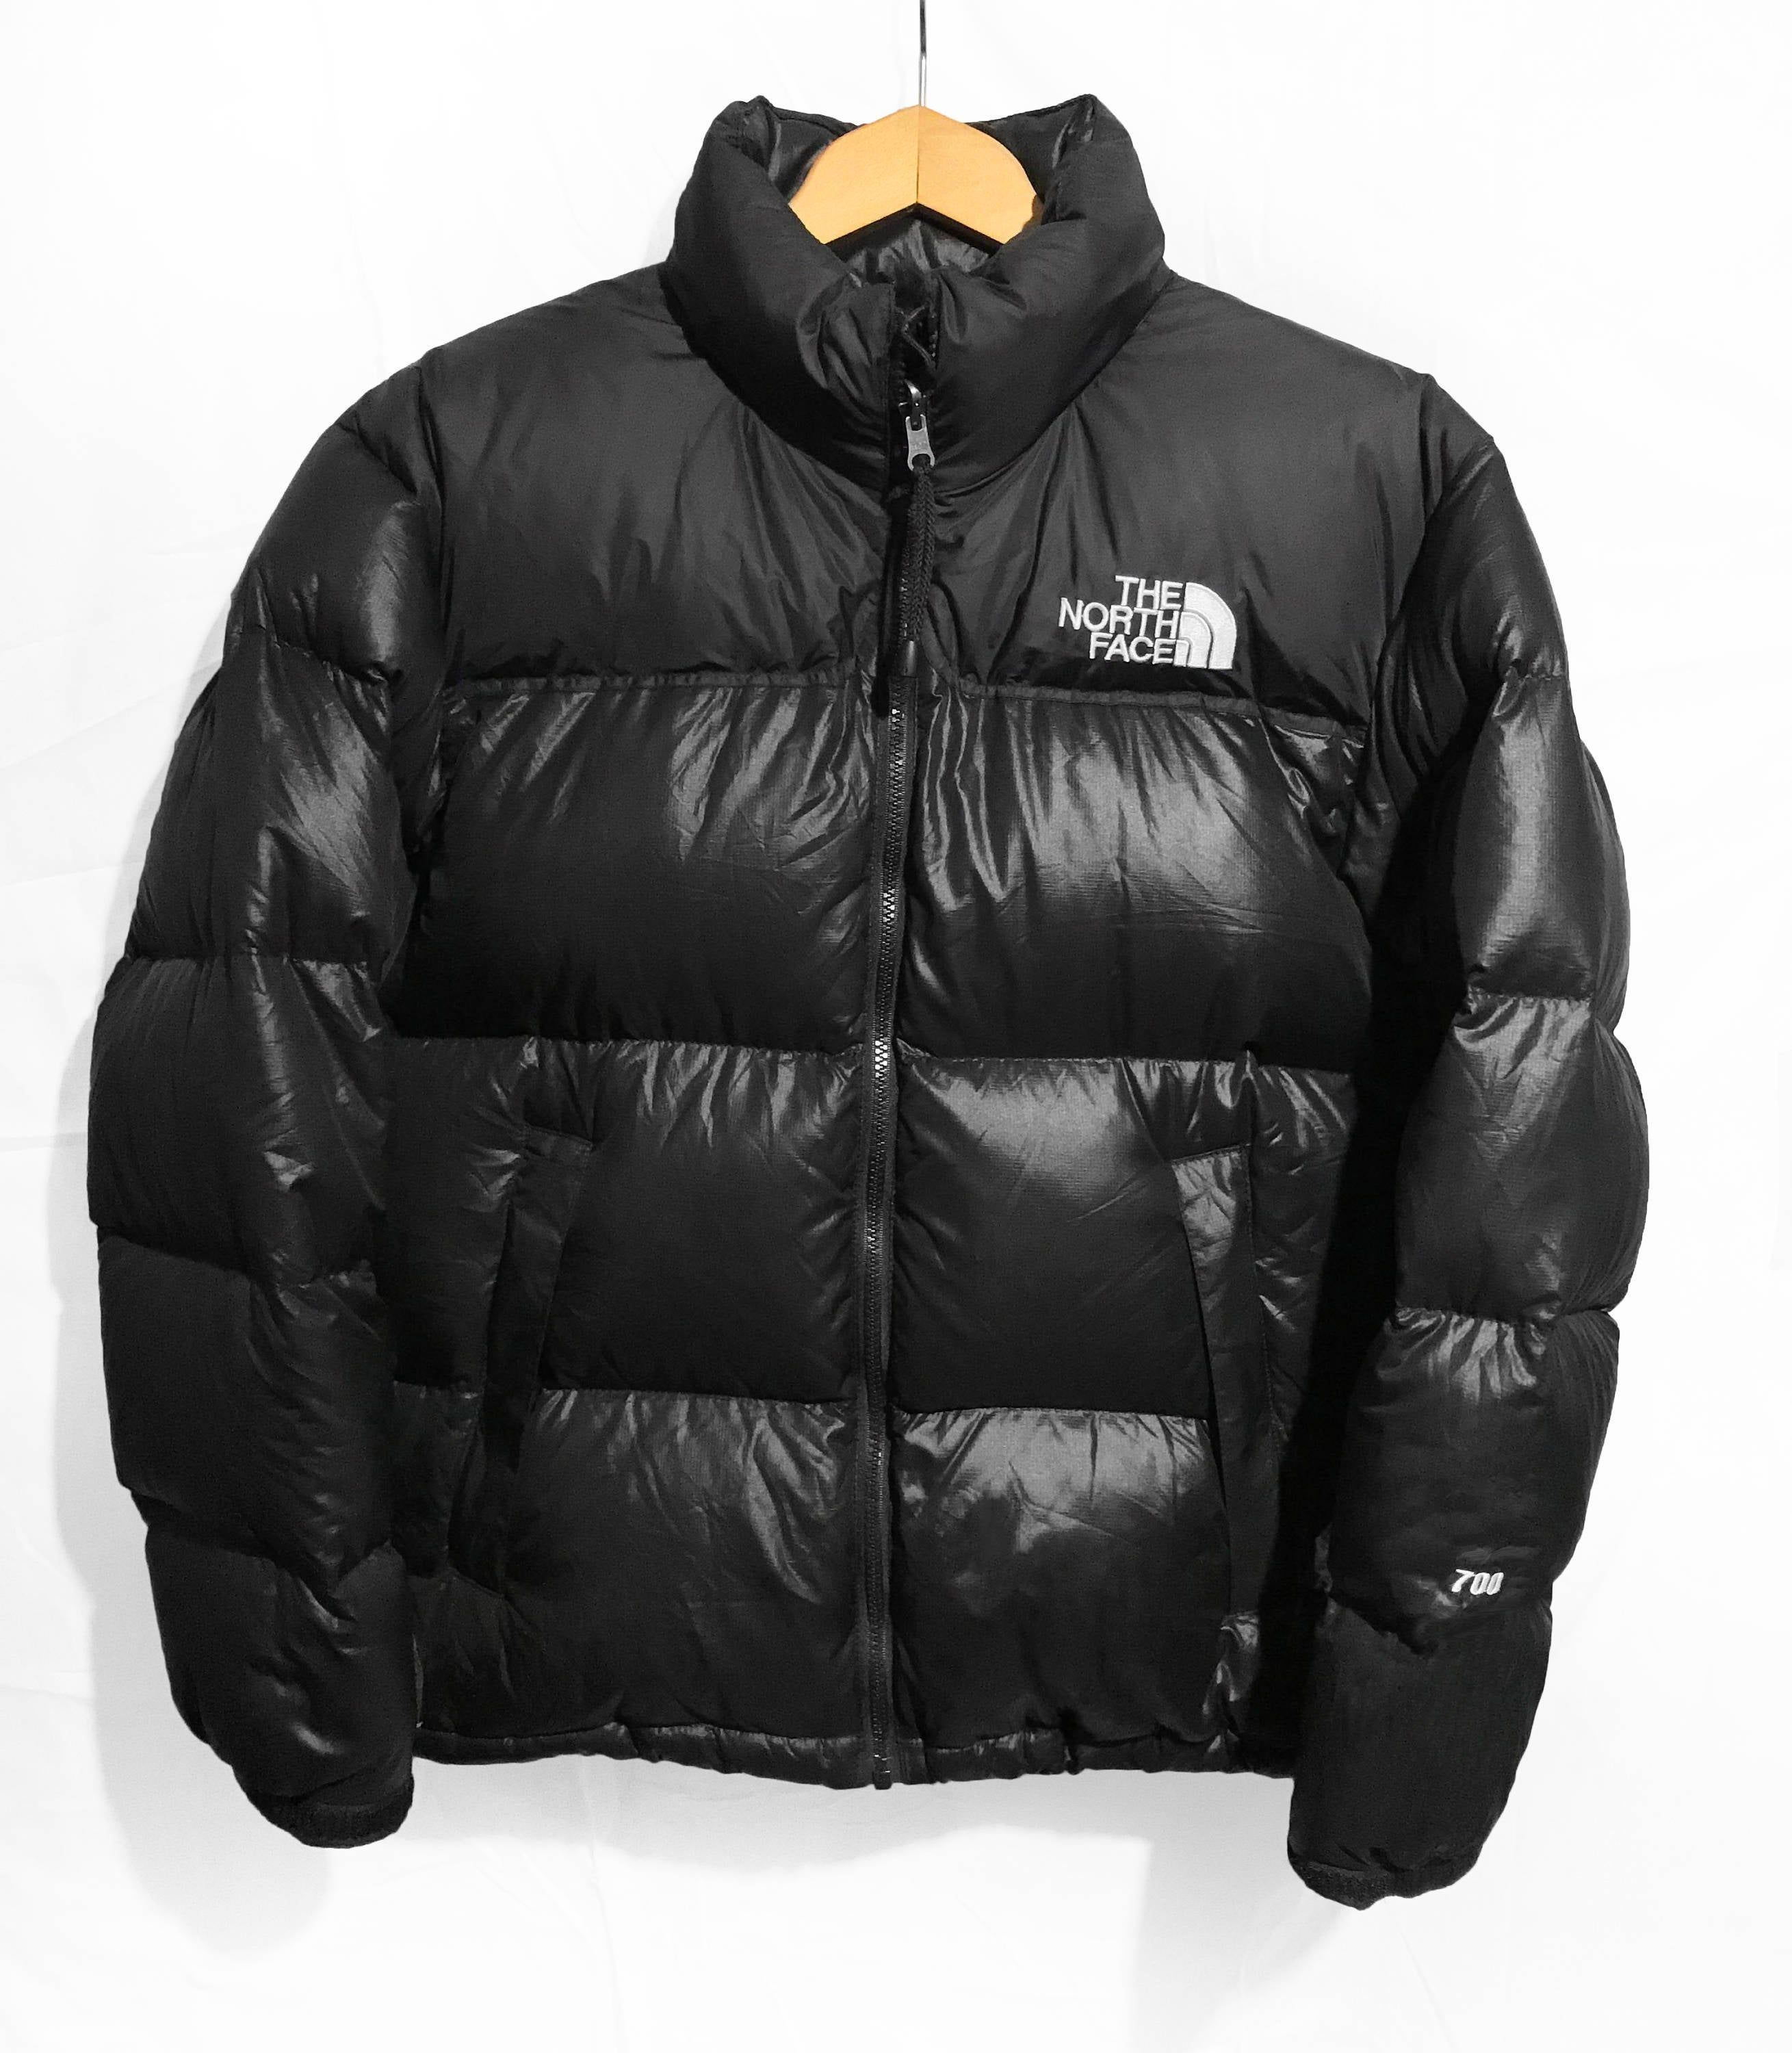 The North Face 700 Nuptse Down Puffer Jacket Size M L Black Puffy North Face 700 The North Face Puffer [ 3000 x 2619 Pixel ]